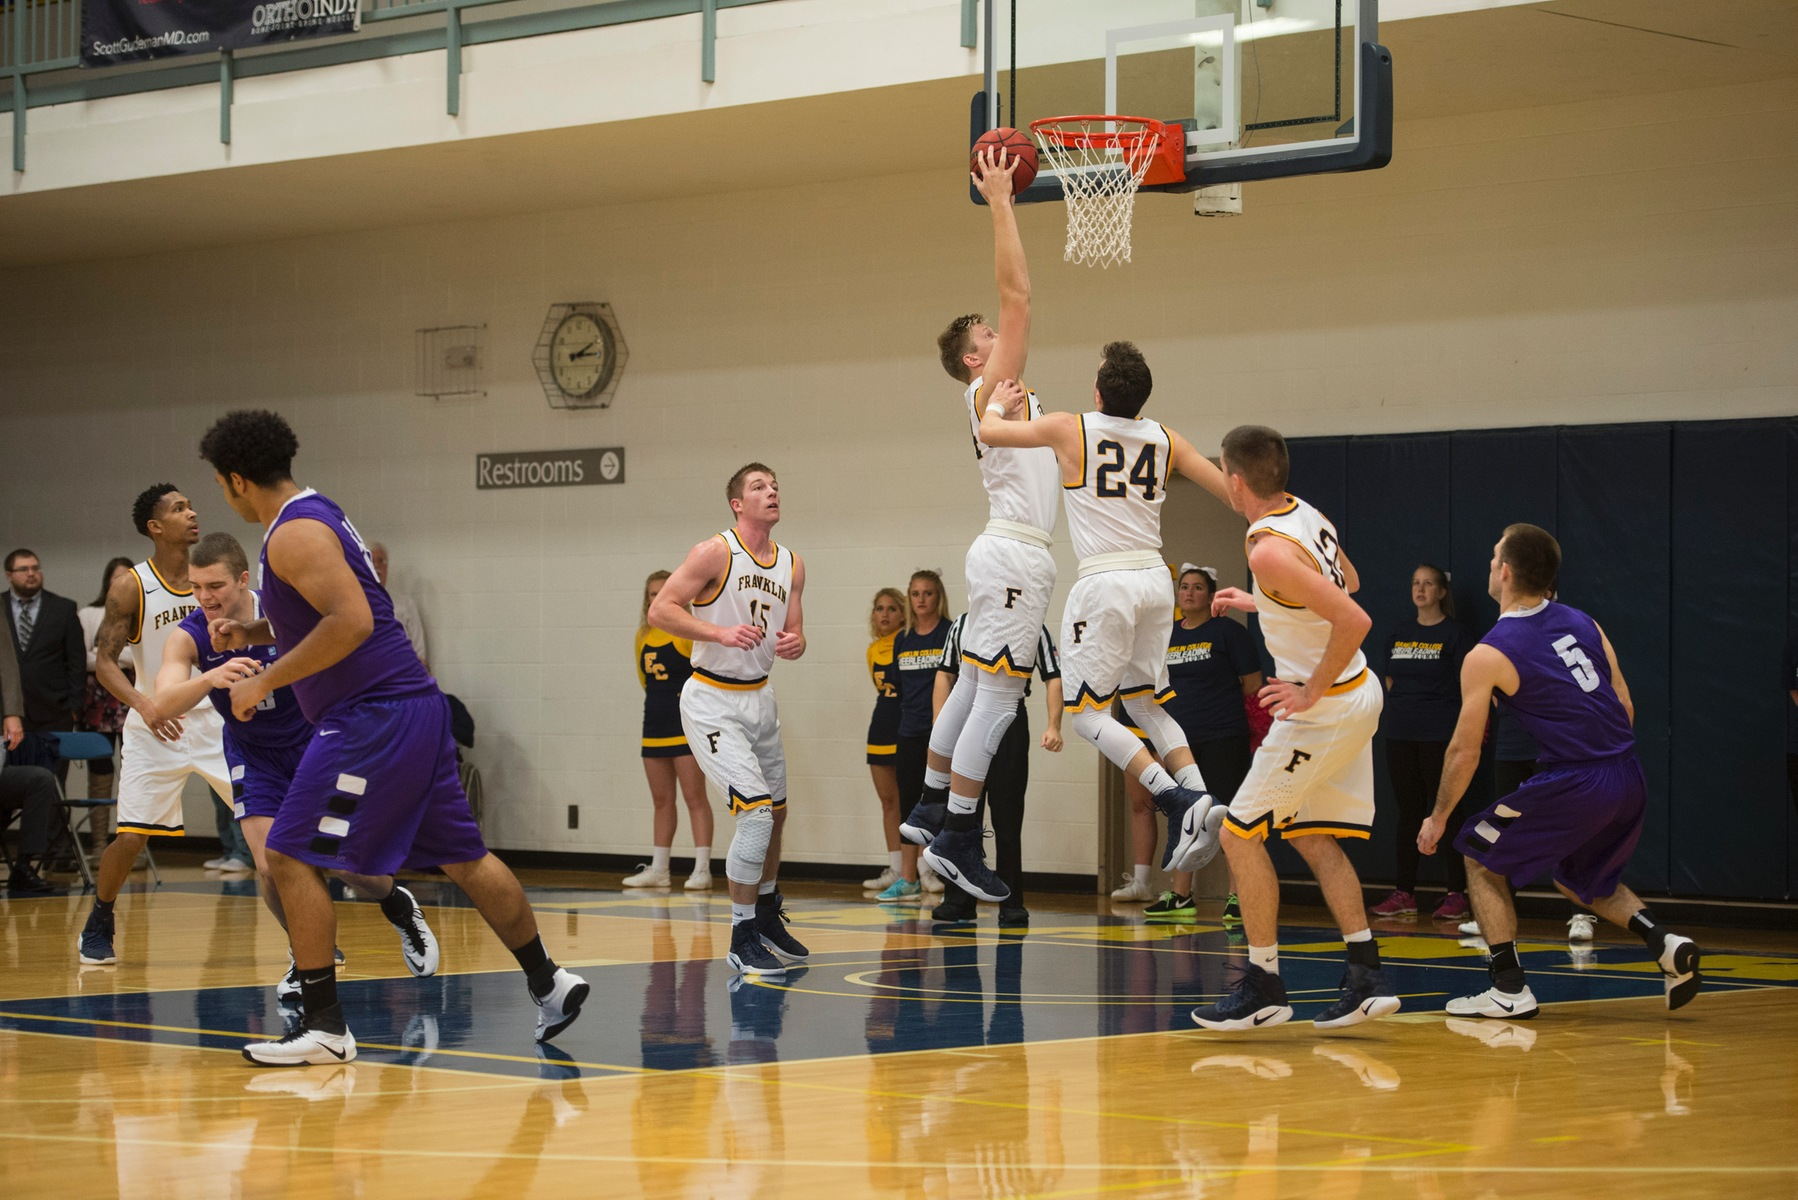 Men's Basketball Team Travels to Hanover on Wednesday